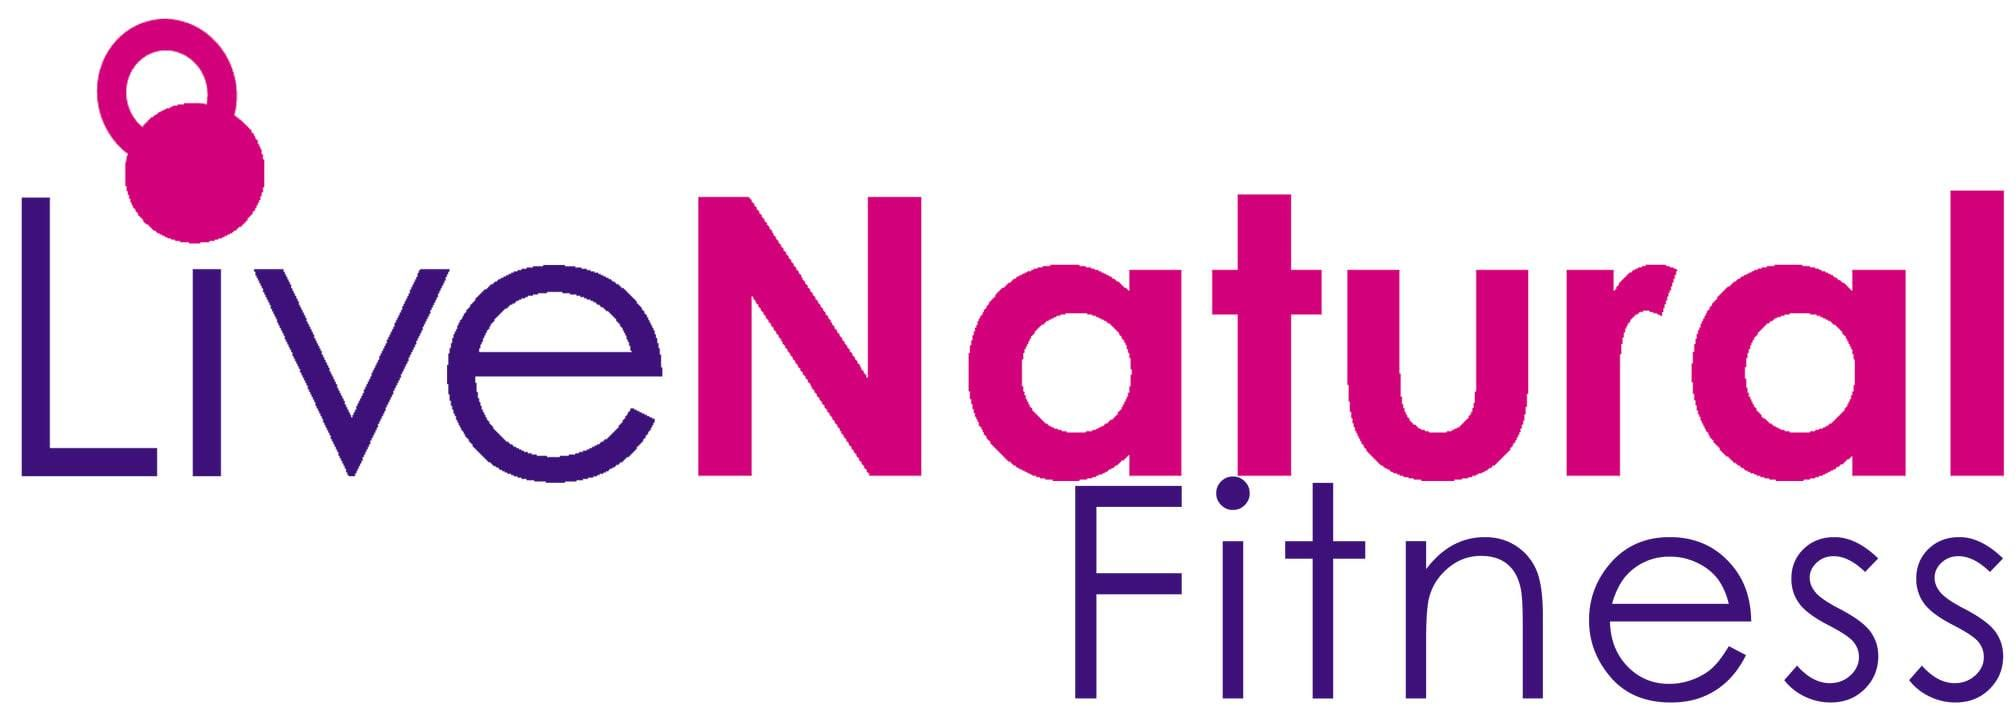 Live Natural Fitness